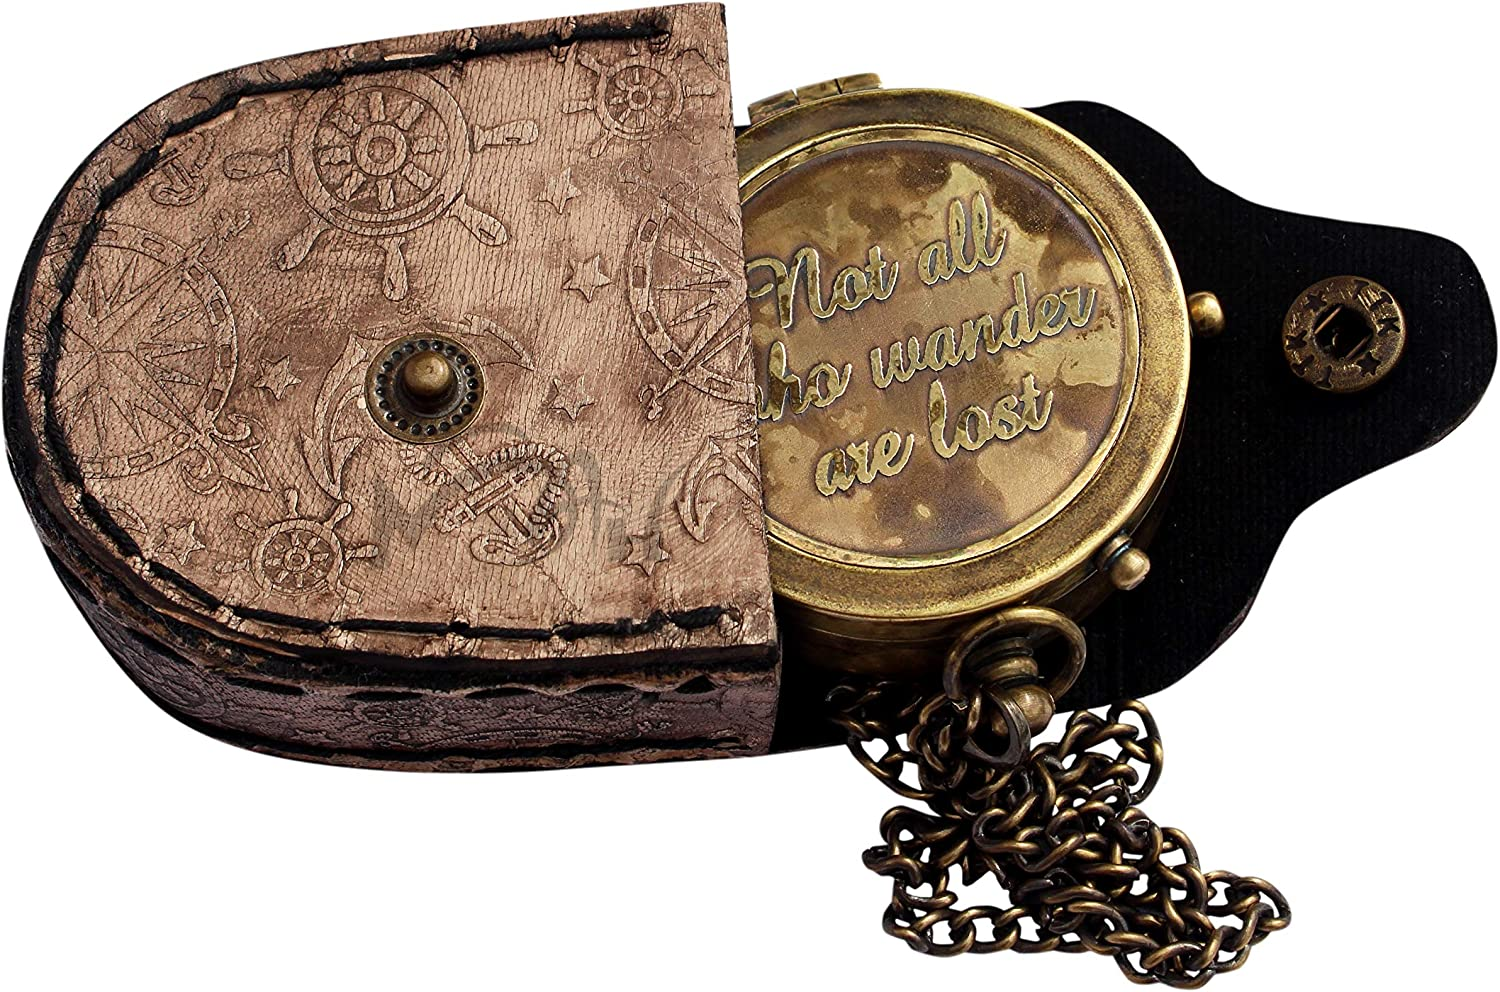 MAH Not All Who Wander are Lost Engraved Brass Compass with Leather Case C-3271 Pirates Compass Magnetic Navigational Instrument